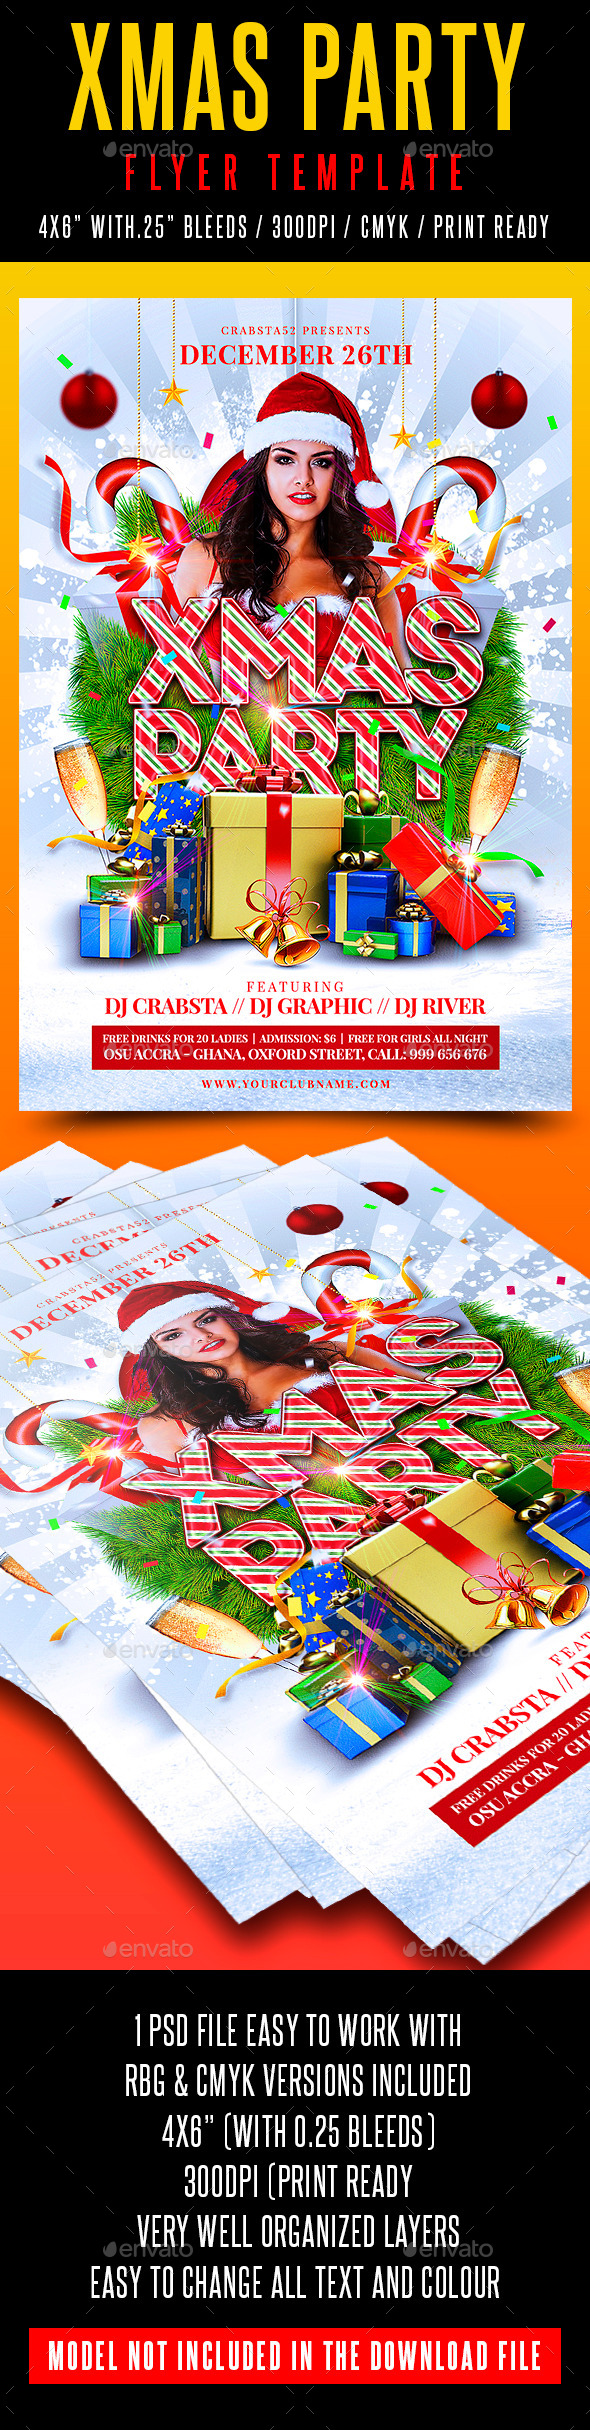 Xmas Party Flyer Template - Holidays Events